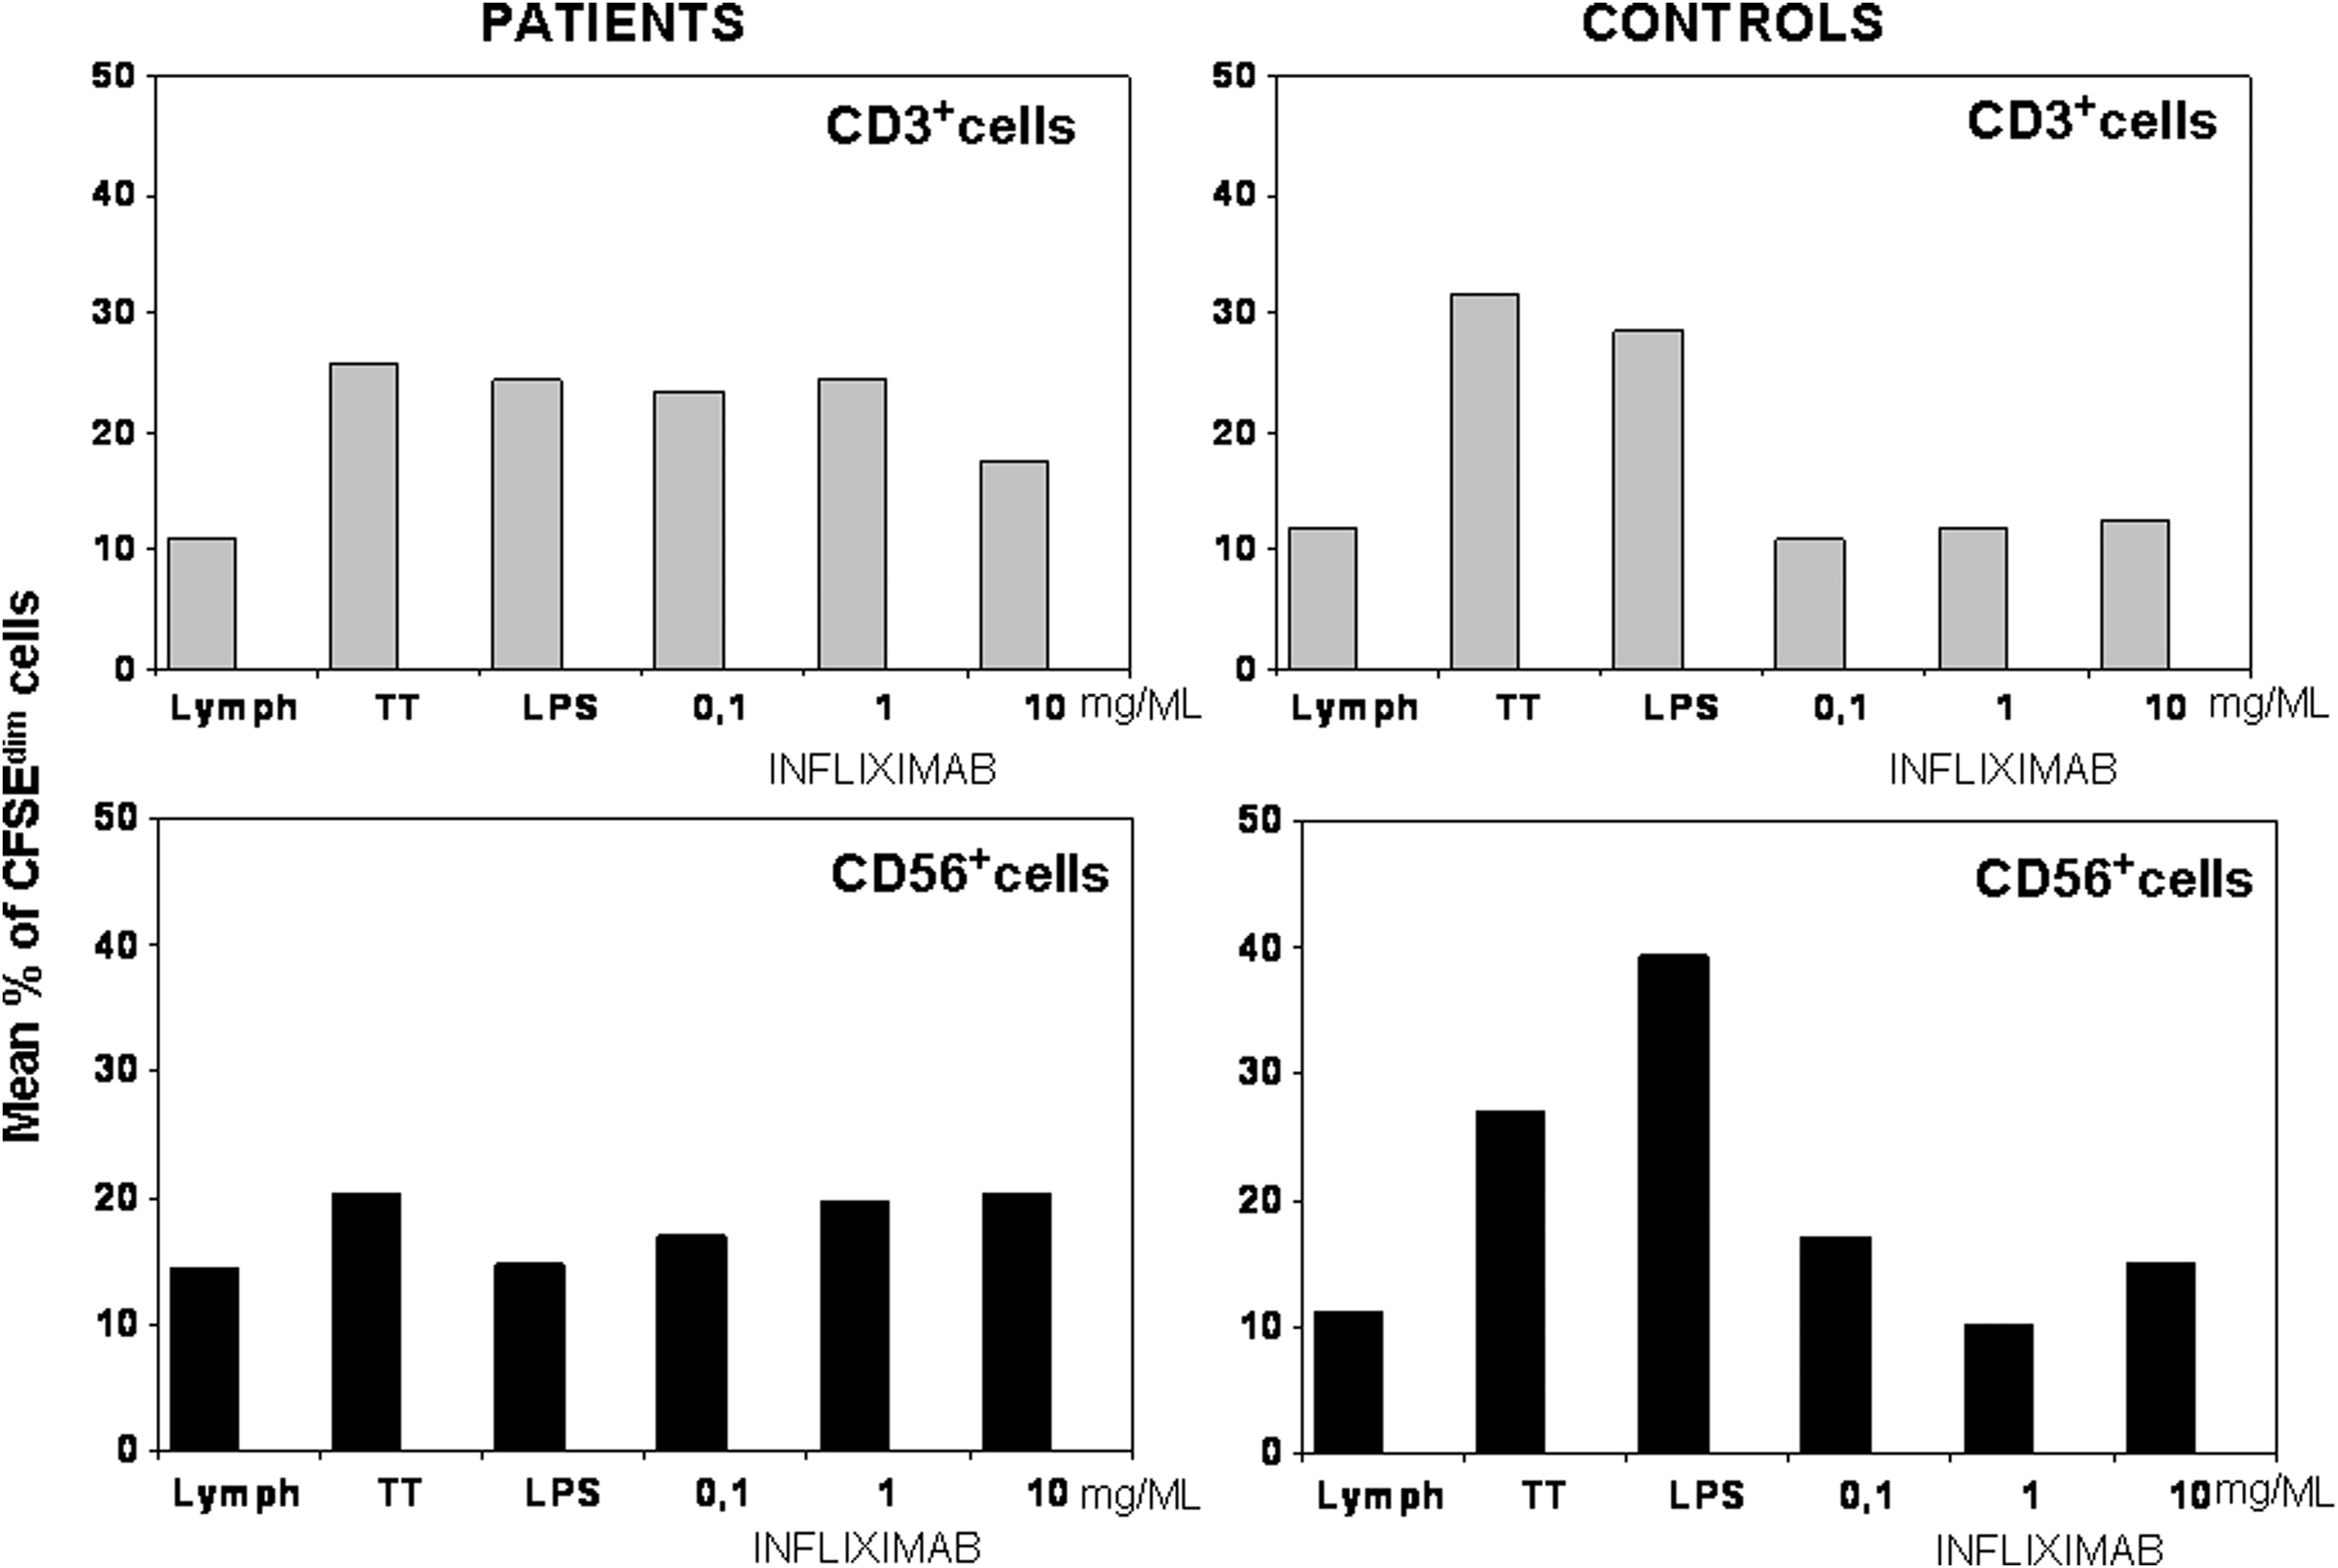 T Cell Involvement In Delayed Type Hypersensitivity Reactions To Infliximab